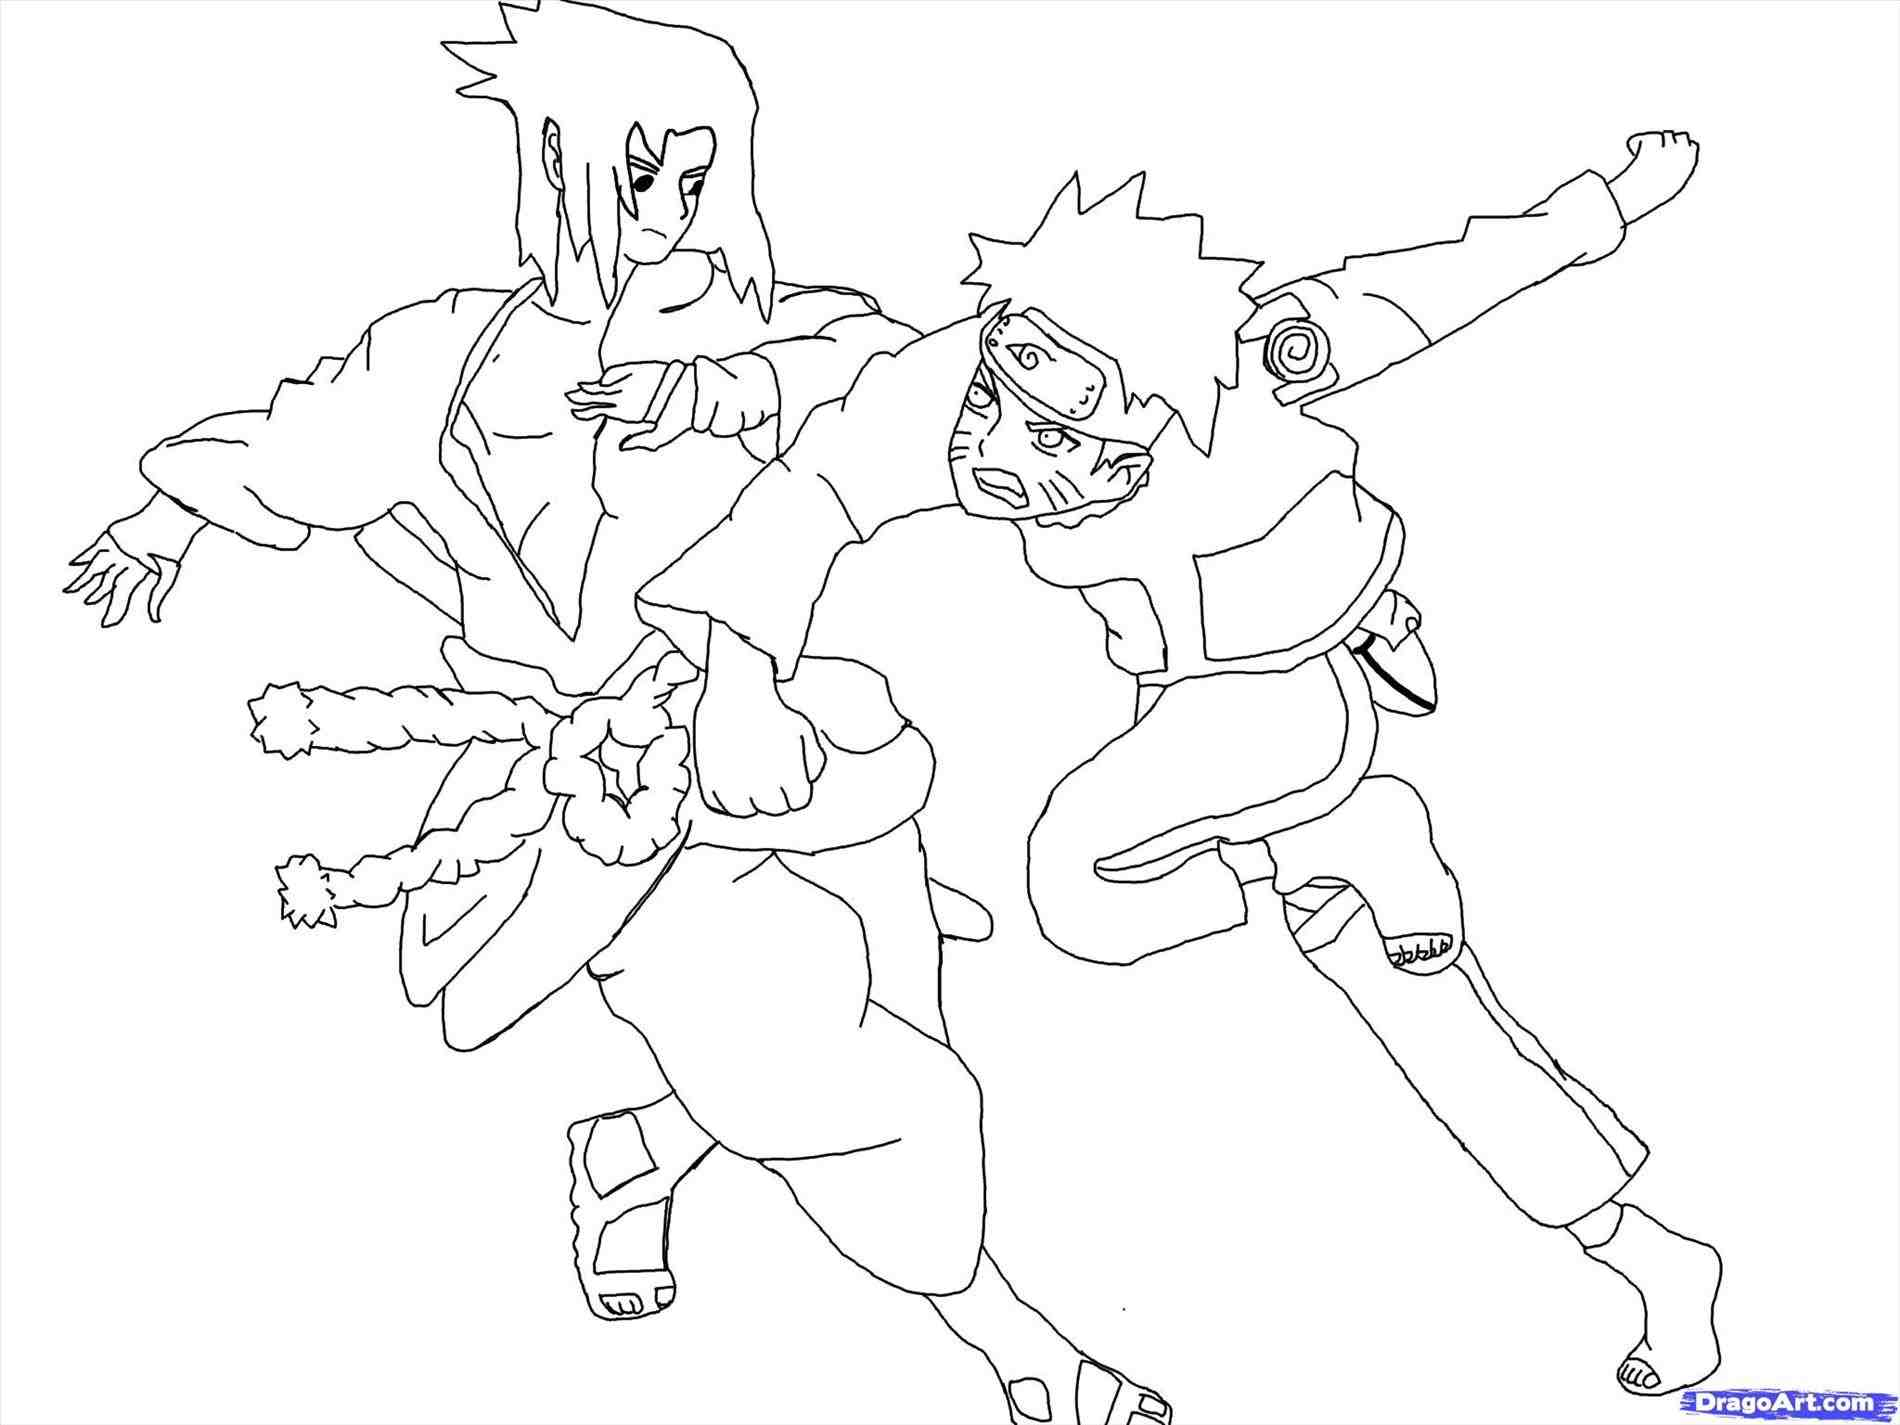 1900x1425 Step By Characters Anime How Naruto Drawings In Pencil Full Body